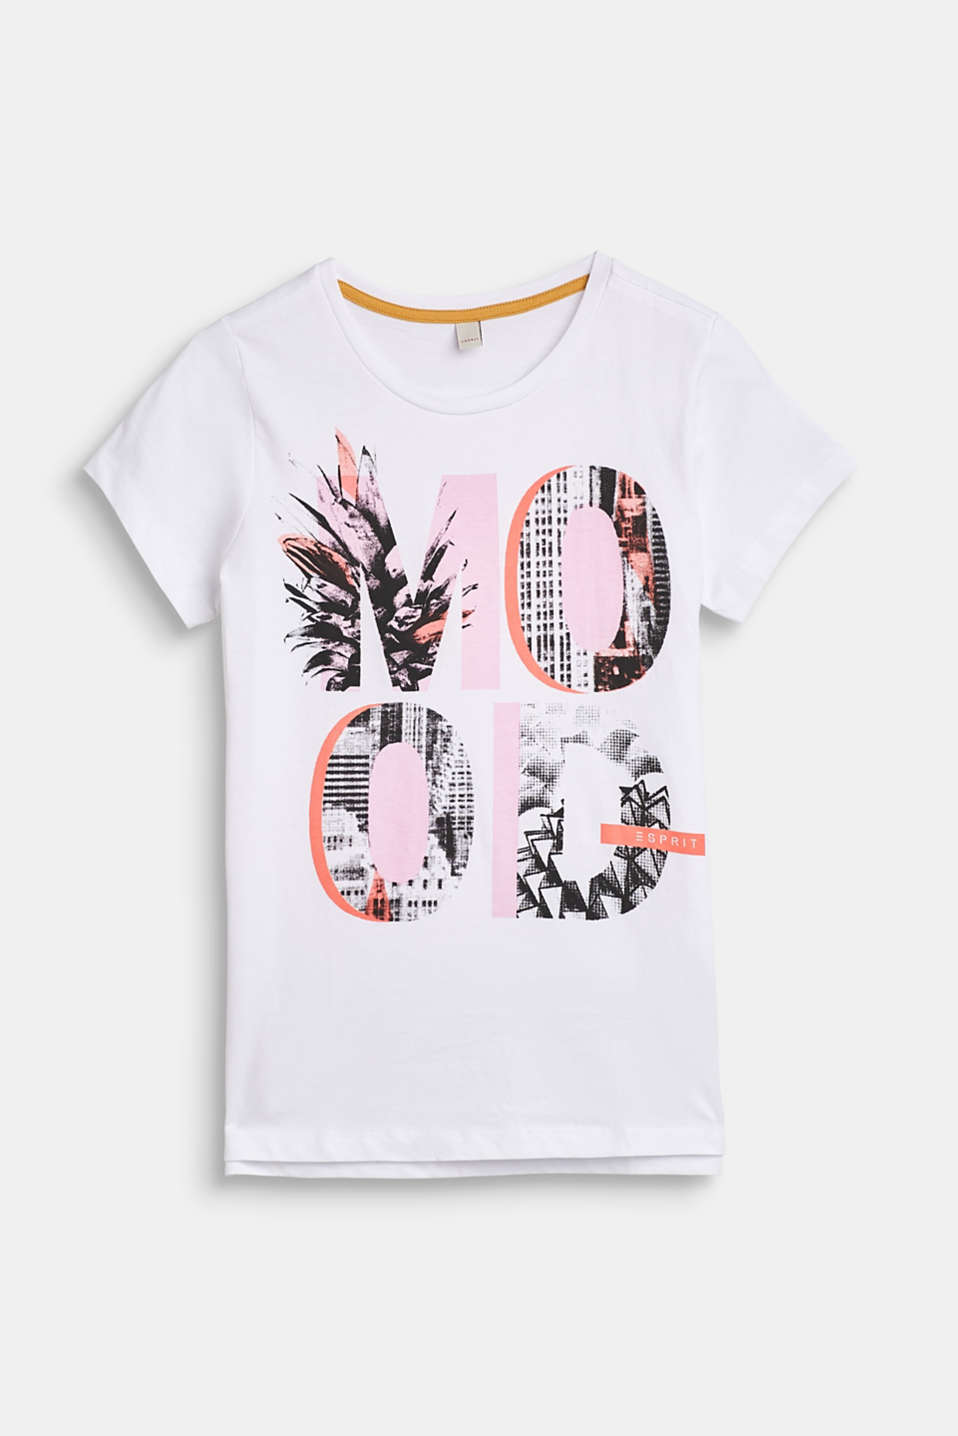 Esprit - T-shirt with printed lettering, 100% cotton